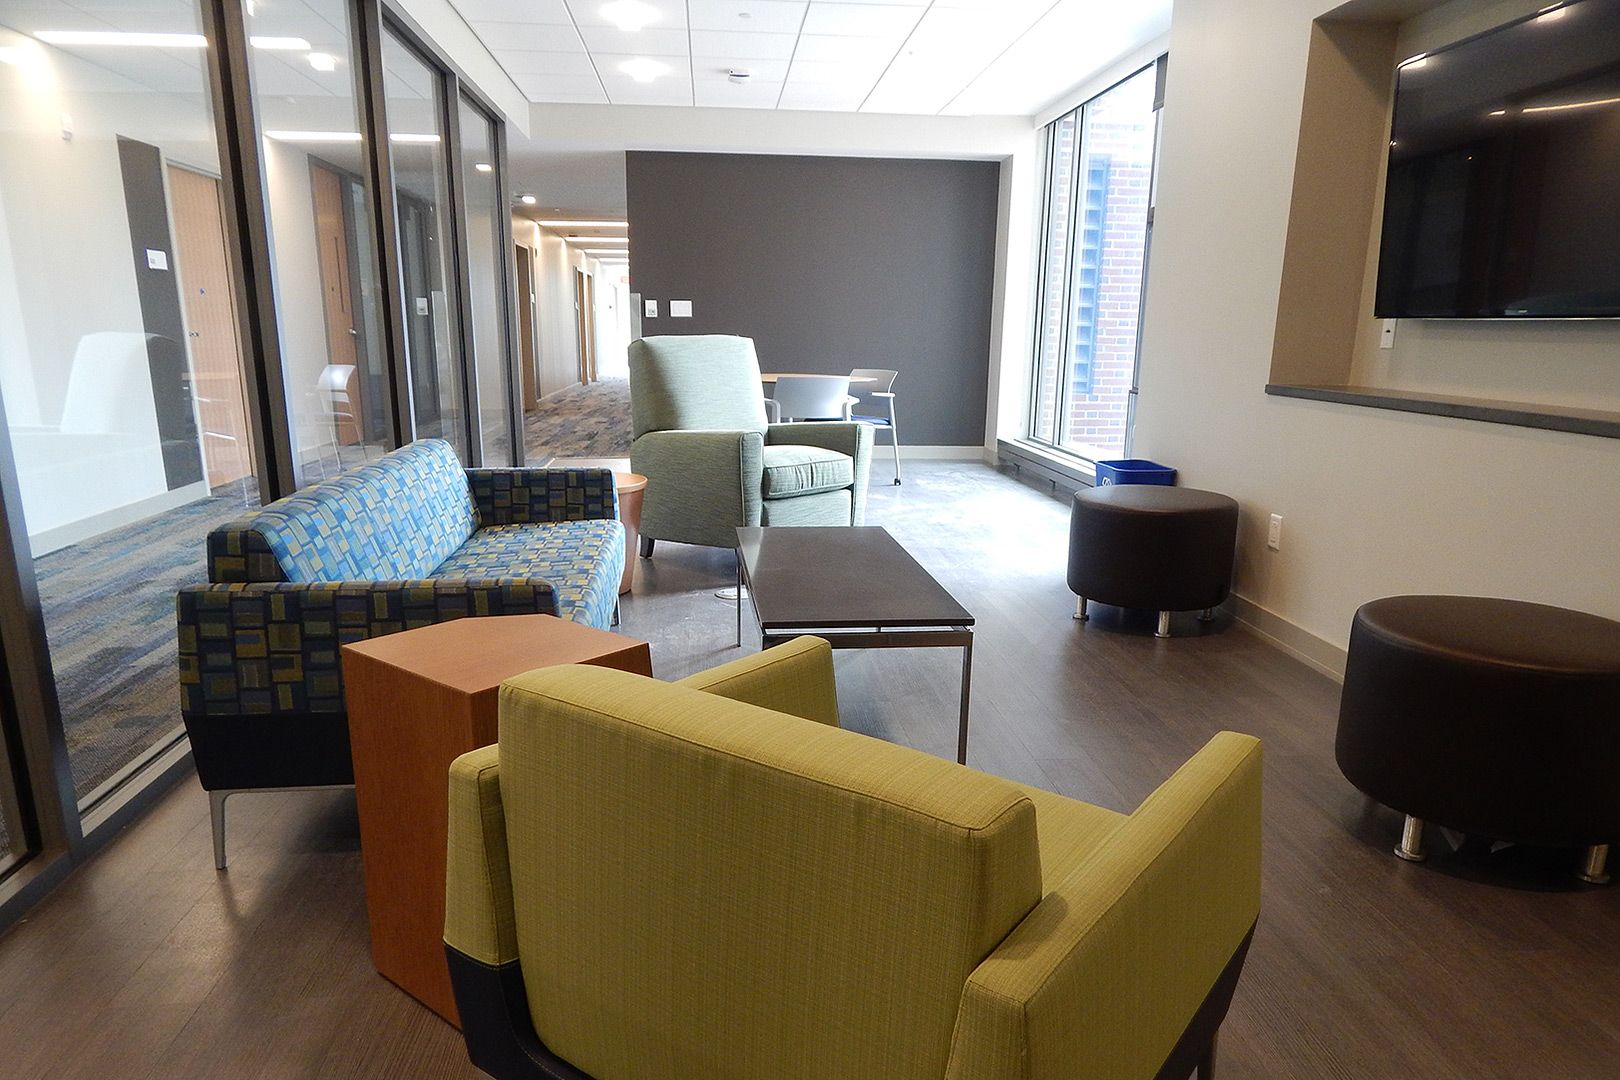 Taken In August Shortly Before Students Moved Into Kalperis Hall This Lounge Contains Mixed Furniture